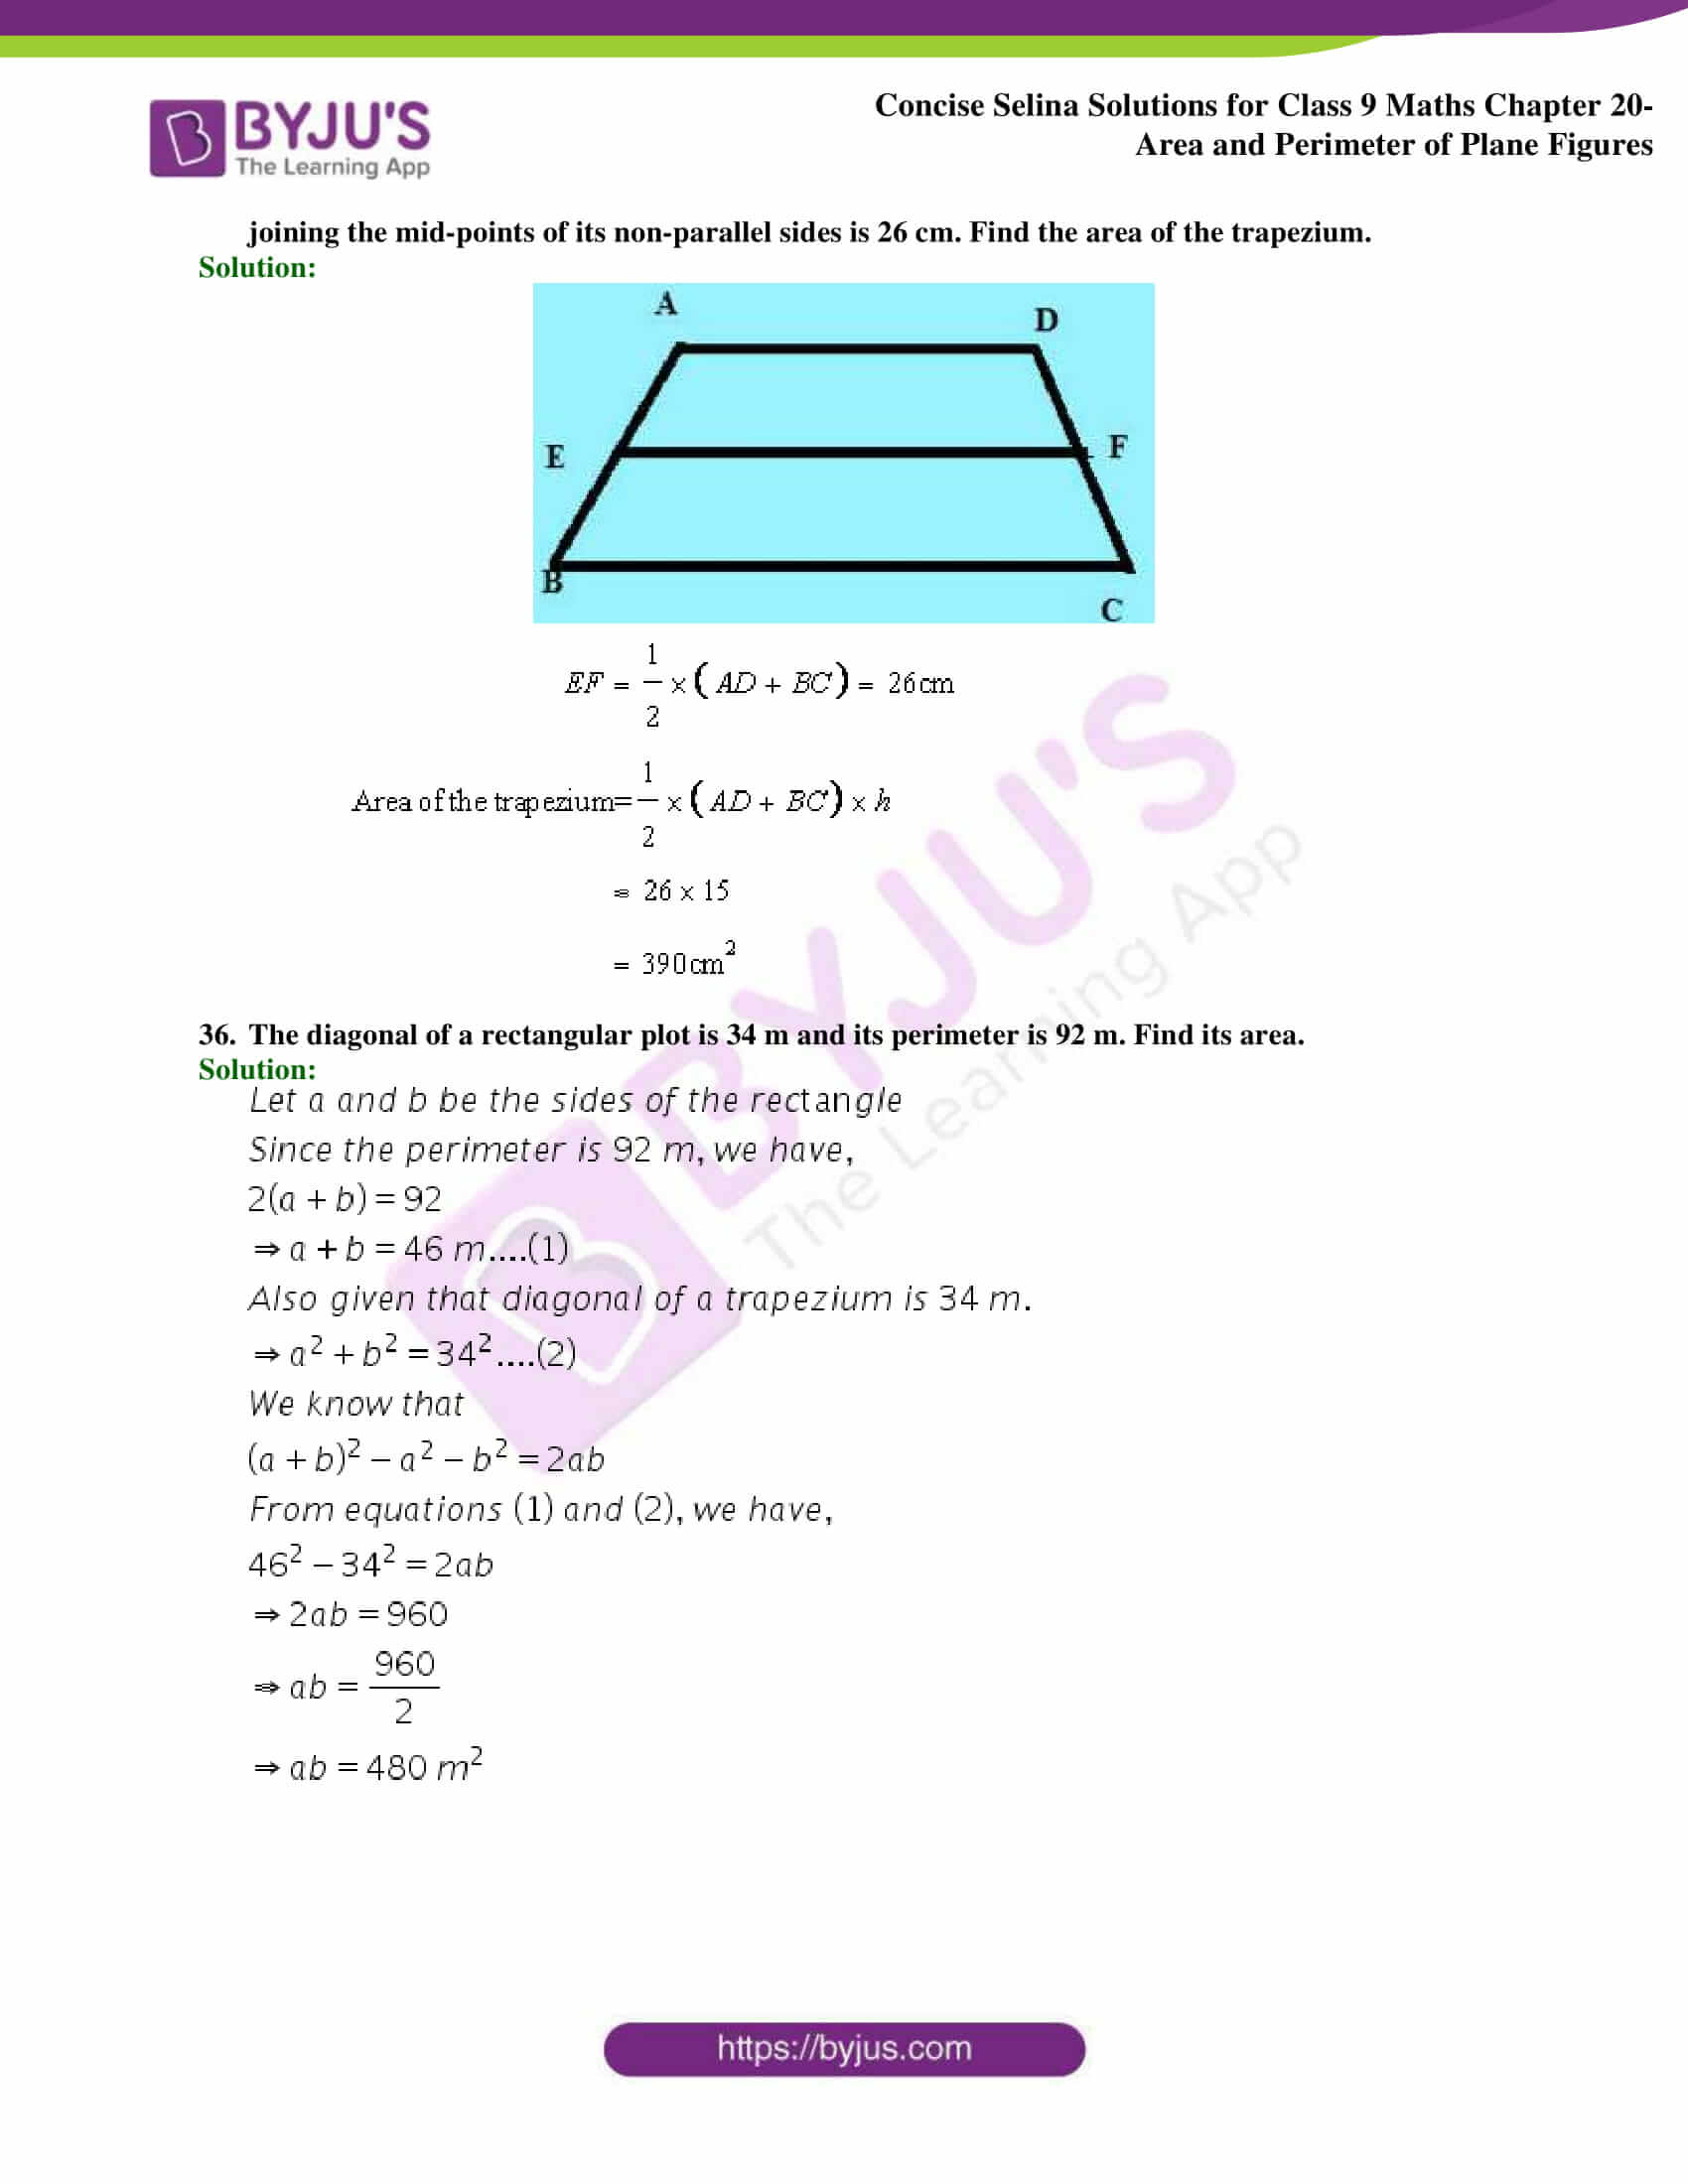 Concise Selina Solutions Class 9 Maths Chapter 20 Area and Perimeter of Plane part 32